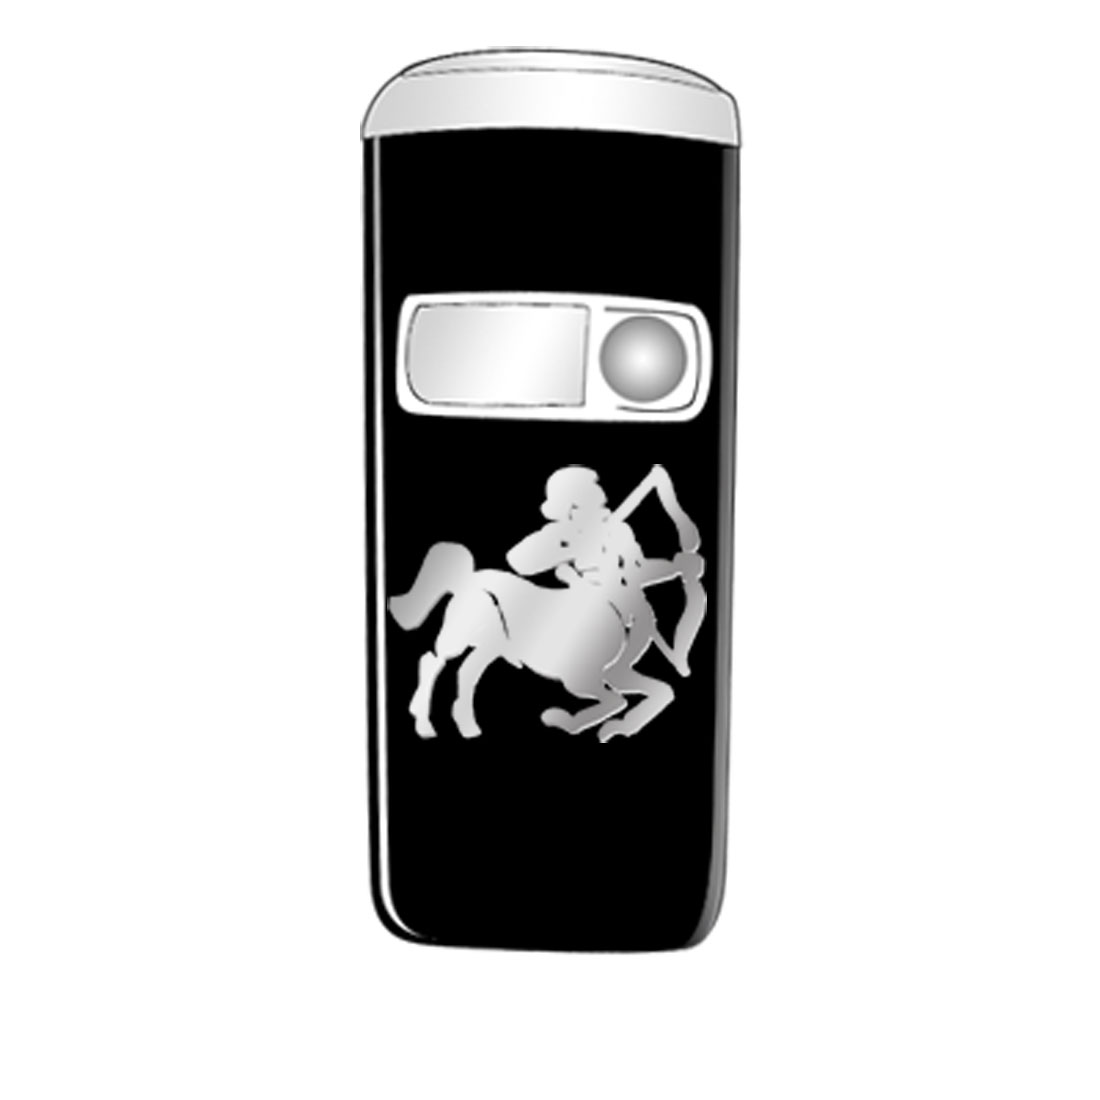 Metallic Sticker for Smartphone NDS MP4 -Sagittarius